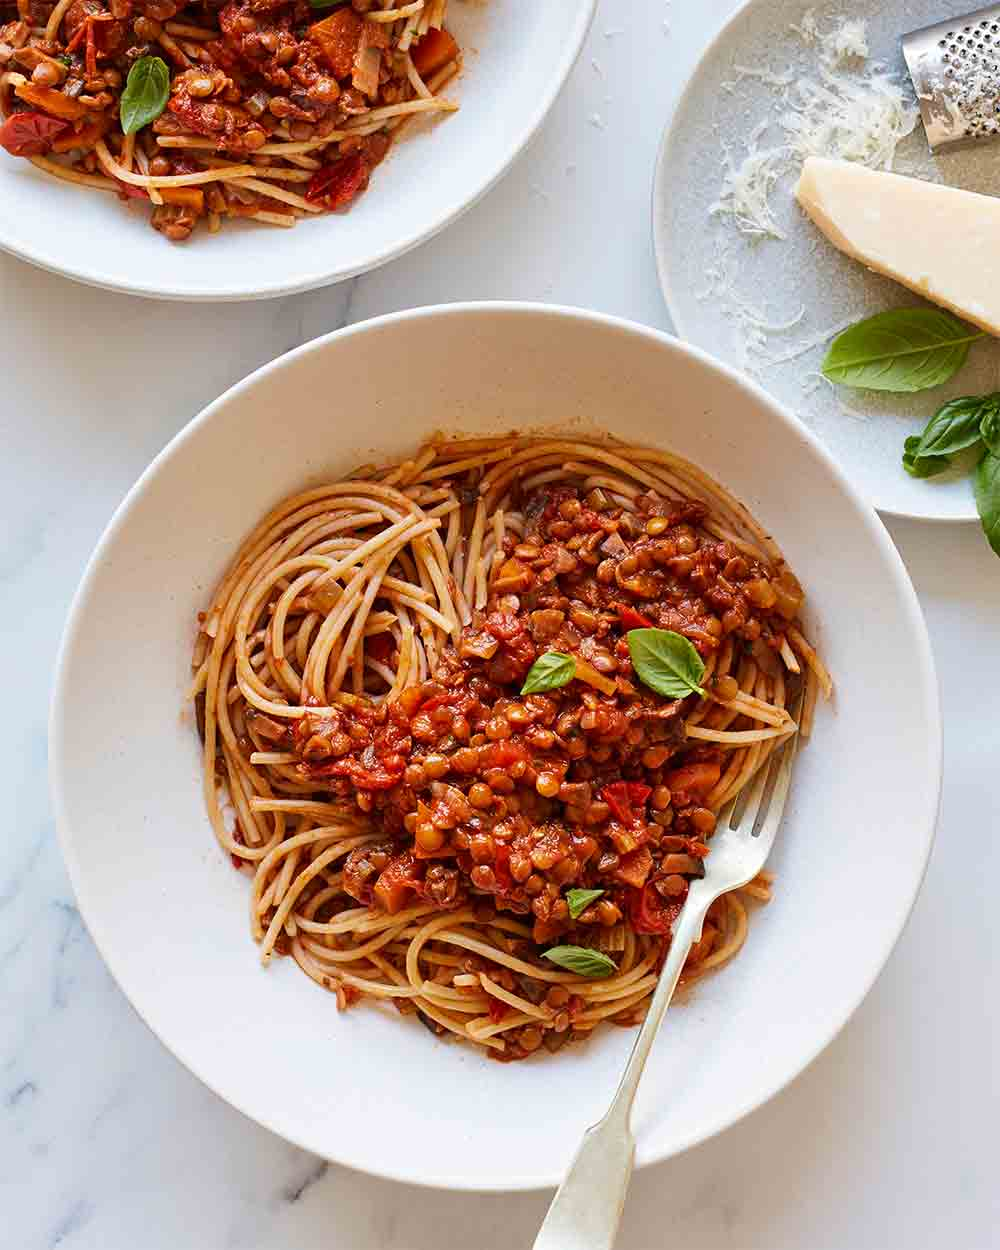 Lentil and Mushroom Ragu by Amelia Freer